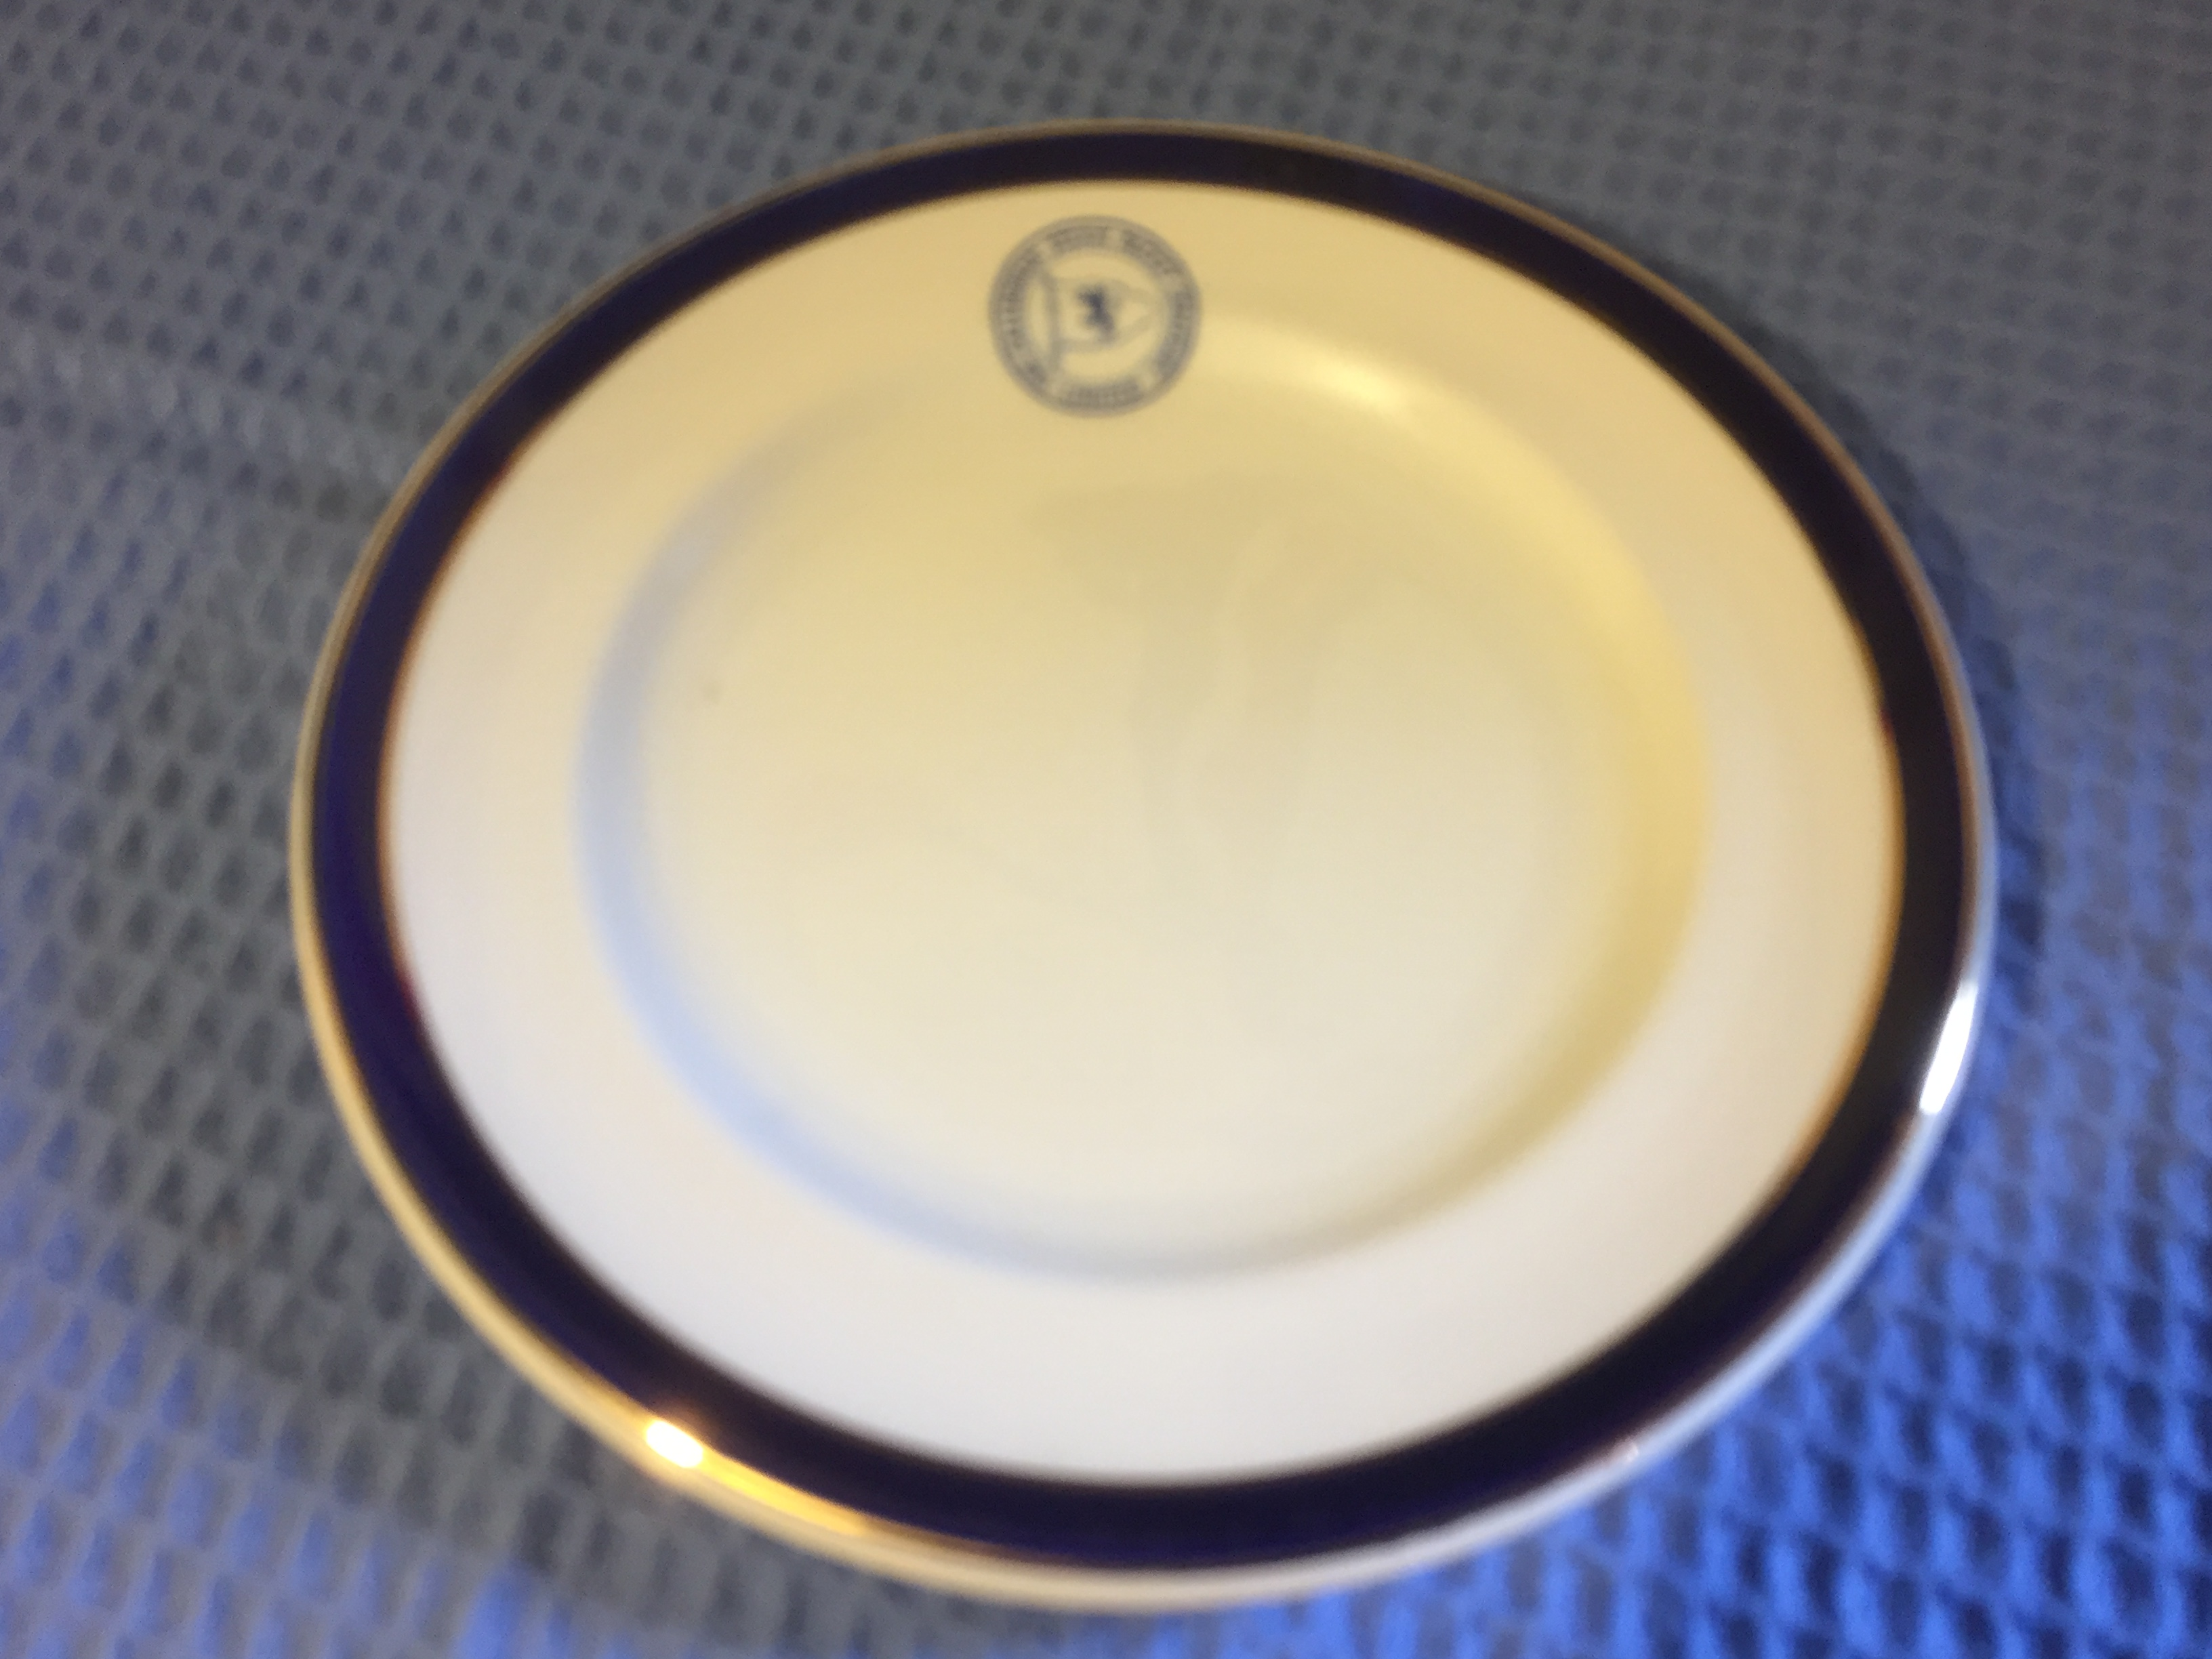 VERY RARE TO FIND PLATE FROM THE CALEDONIAN STEAM PACKET COMPANY LIMITED